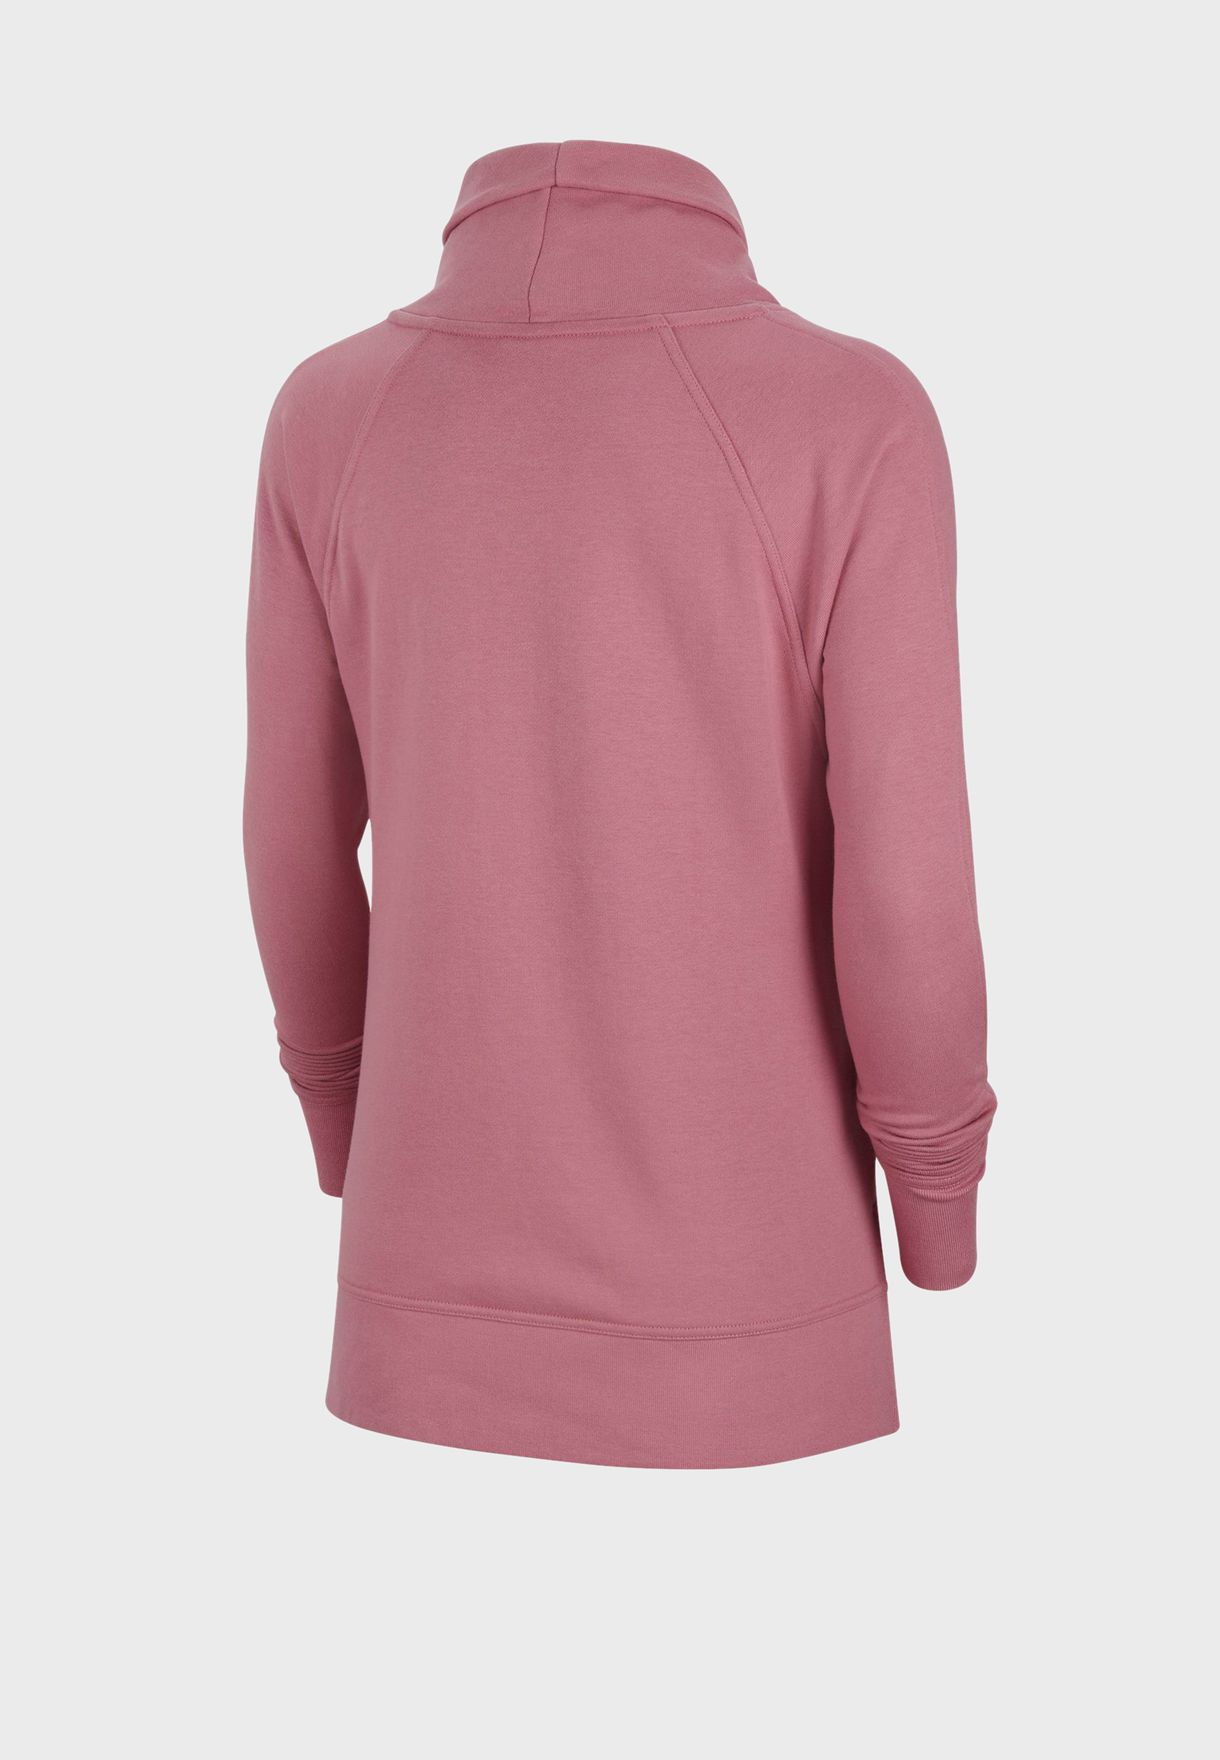 Dri-FIT Fleece Cowl Neck Sweatshirt